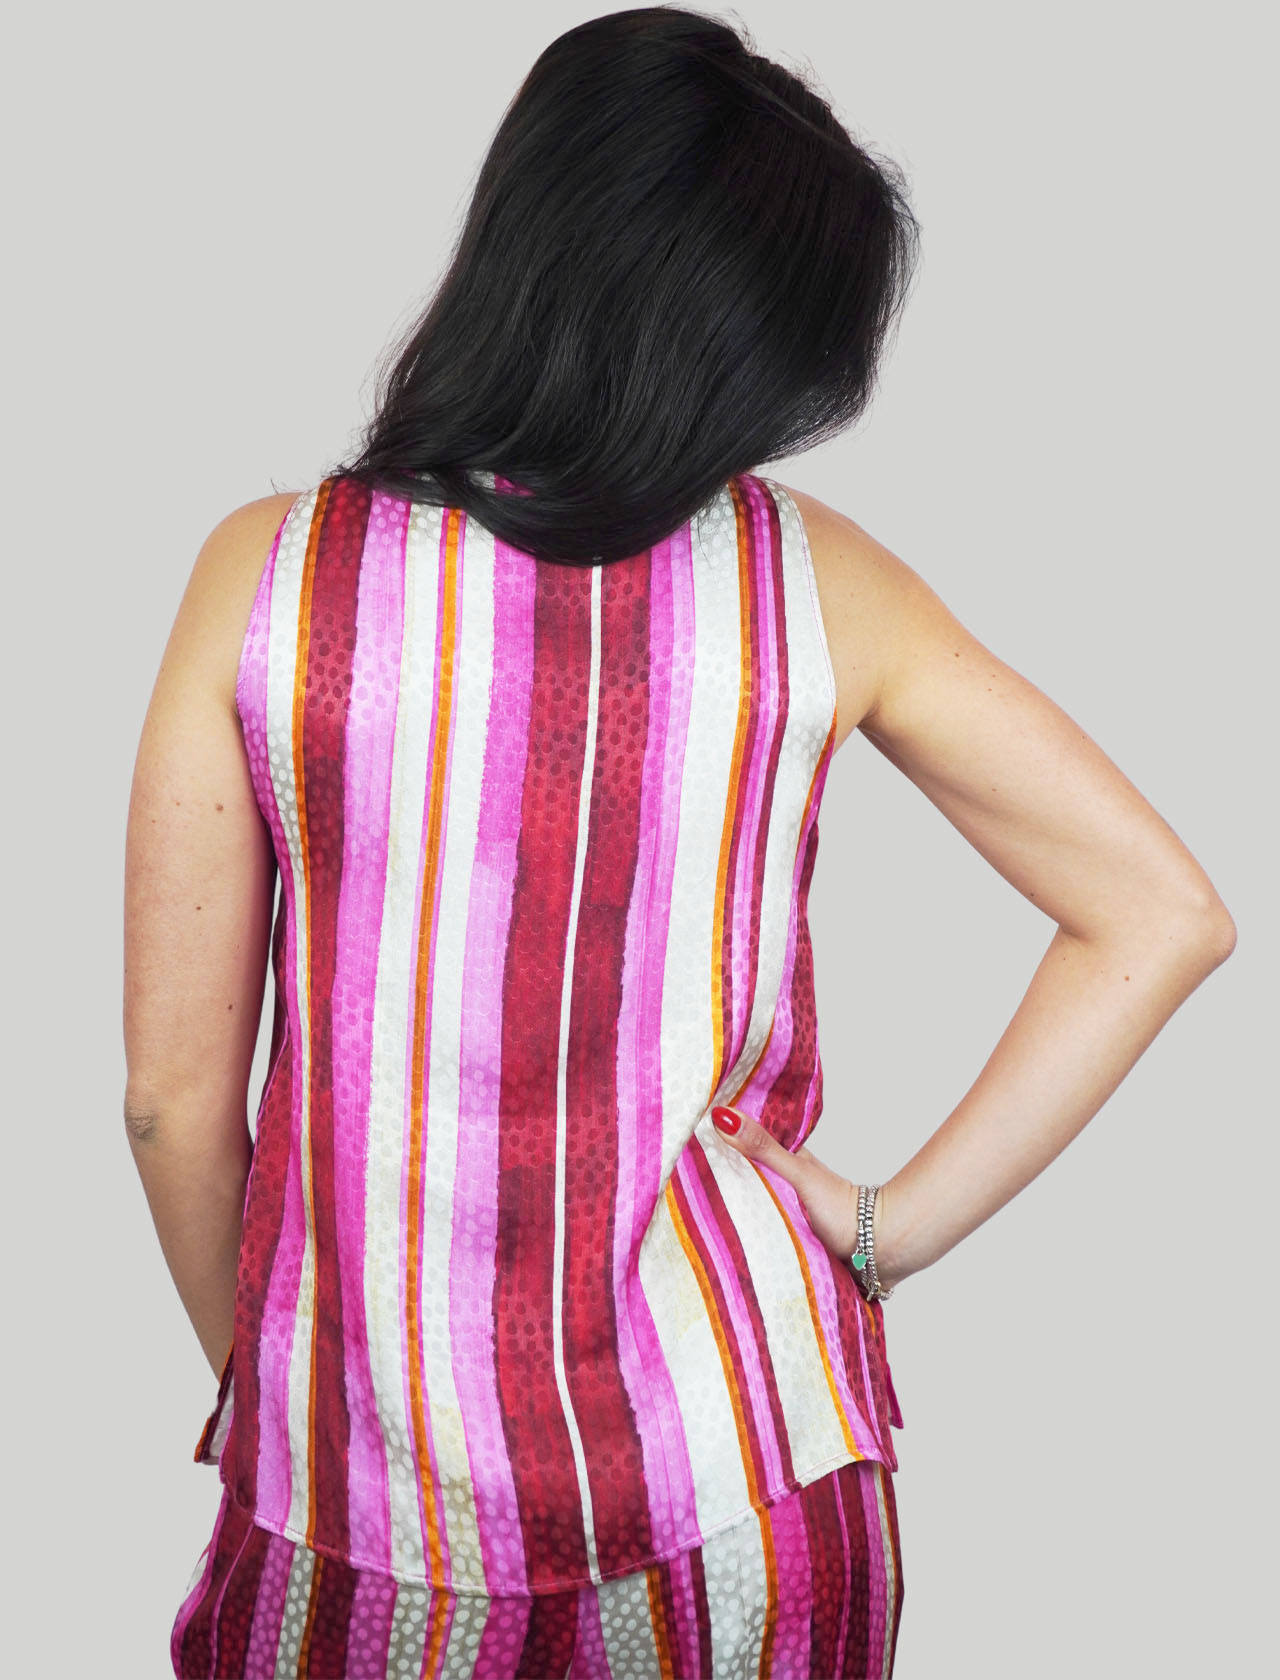 Women's Clothing Stripes Jacquard Top In Pink and Red with V-Neck Maliparmi | Shirts and tops | JP531850557B3223